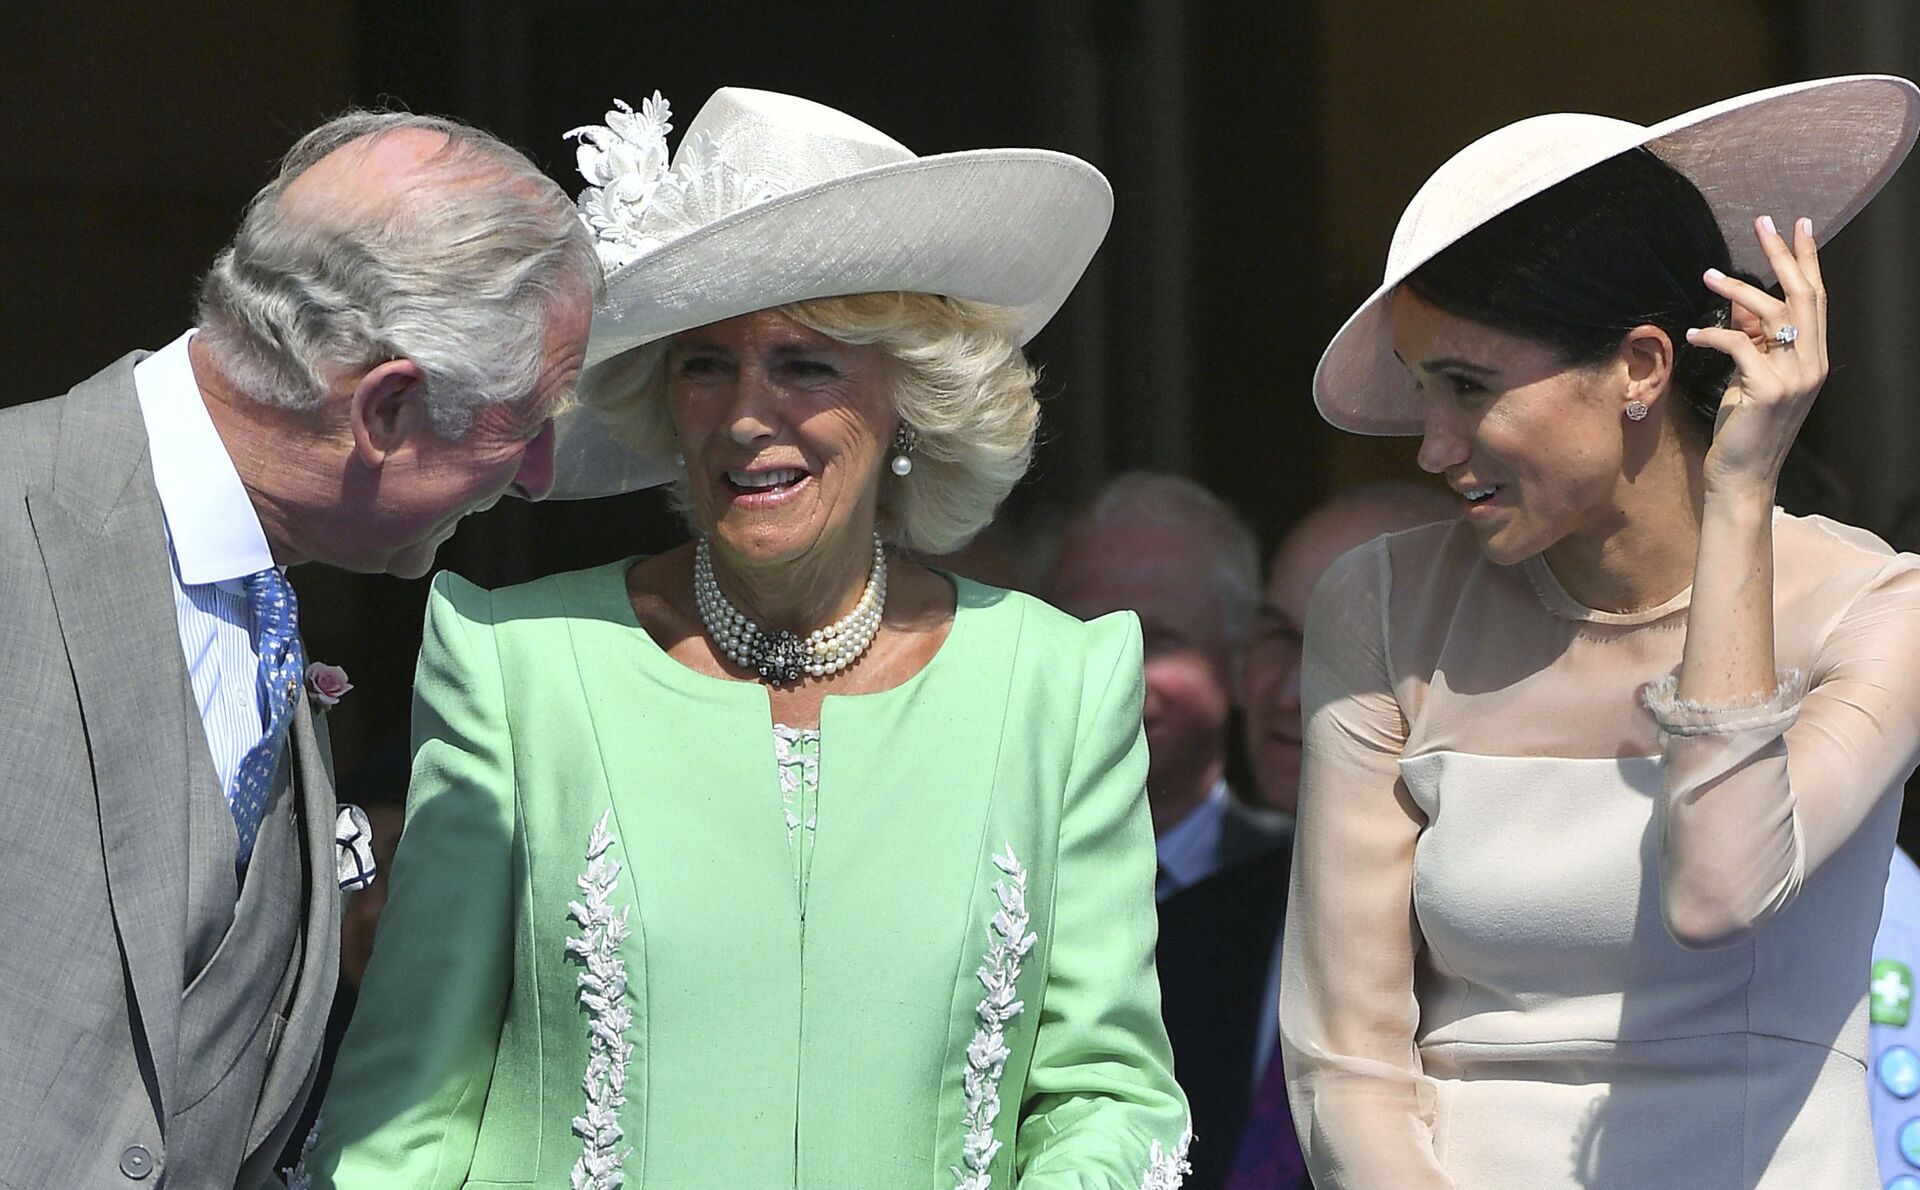 Britian's Prince Charles, left, reacts with Camilla, the Duchess of Cornwall and Meghan, the Duchess of Sussex, during a garden party at Buckingham Palace in London, Tuesday May 22, 2018. - Sputnik International, 1920, 07.09.2021